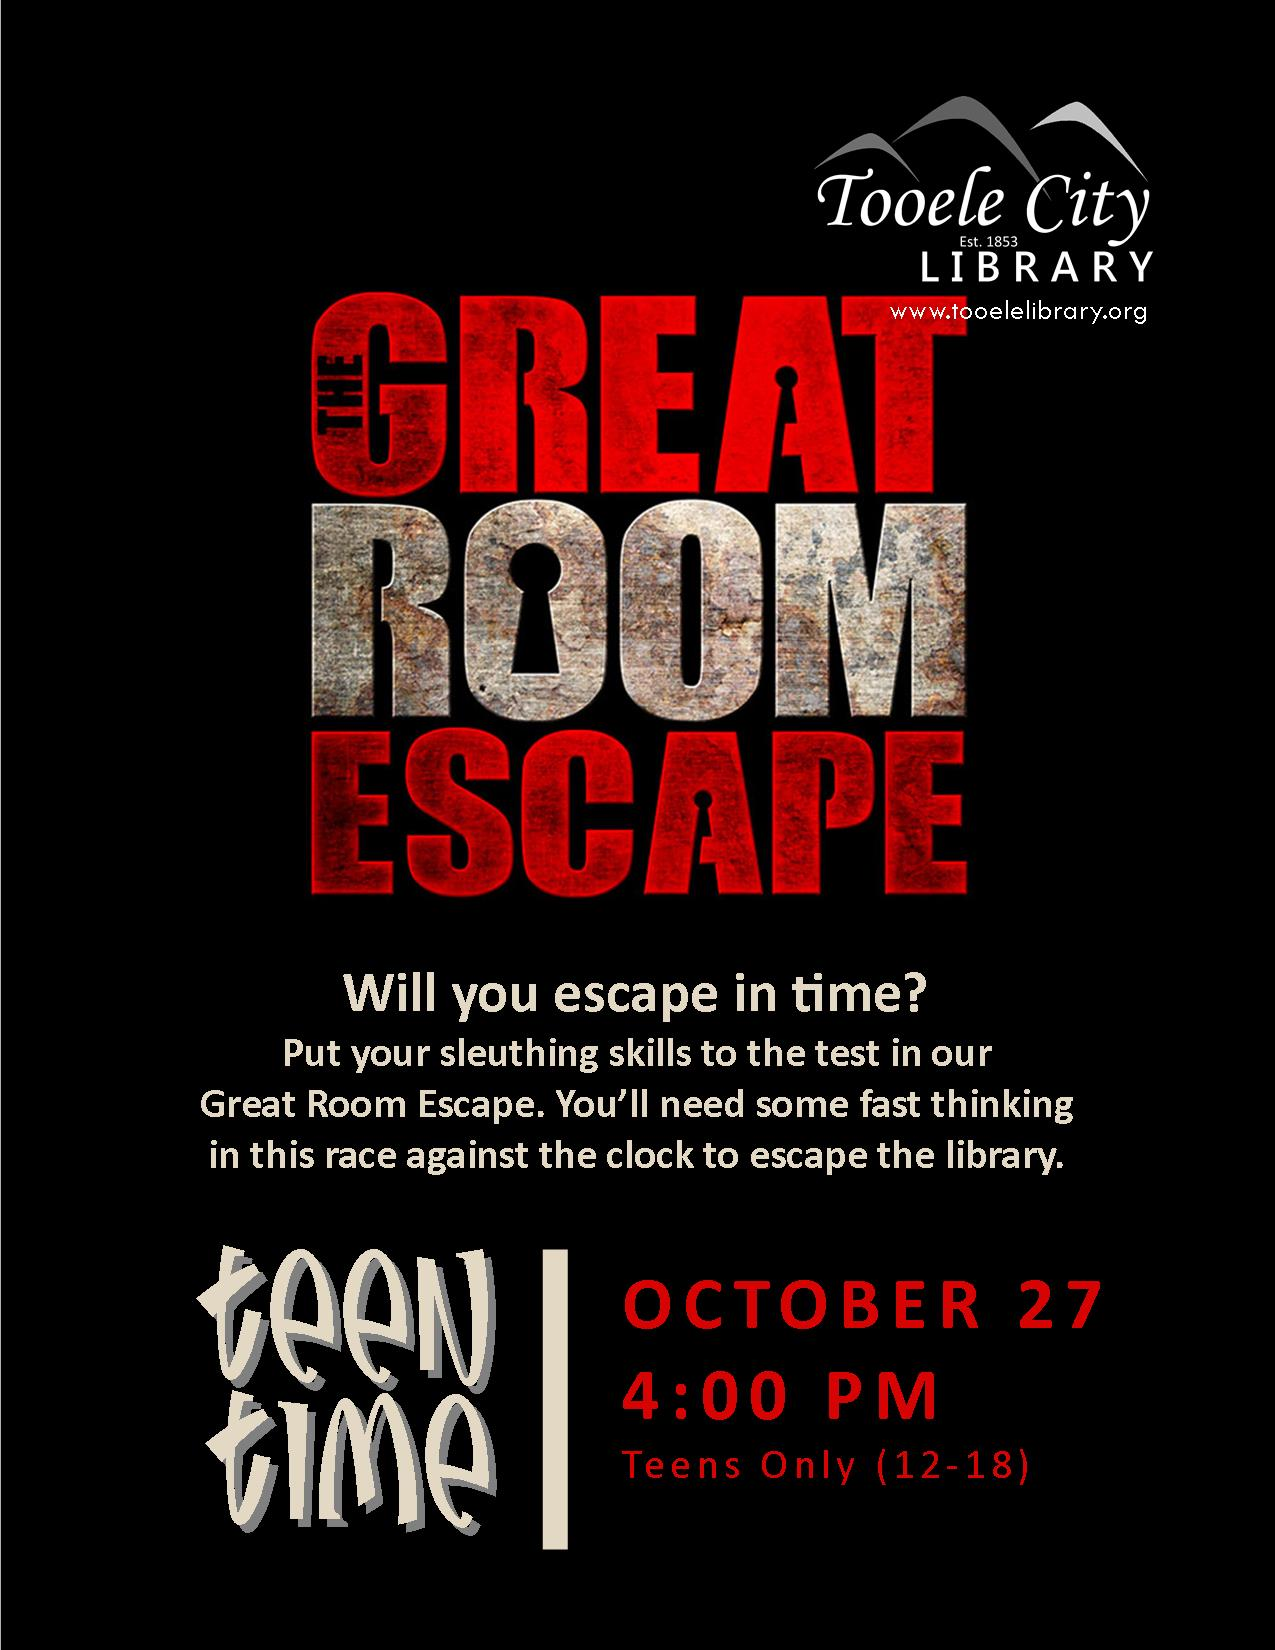 10-27-tt-great-room-escape | Tooele City